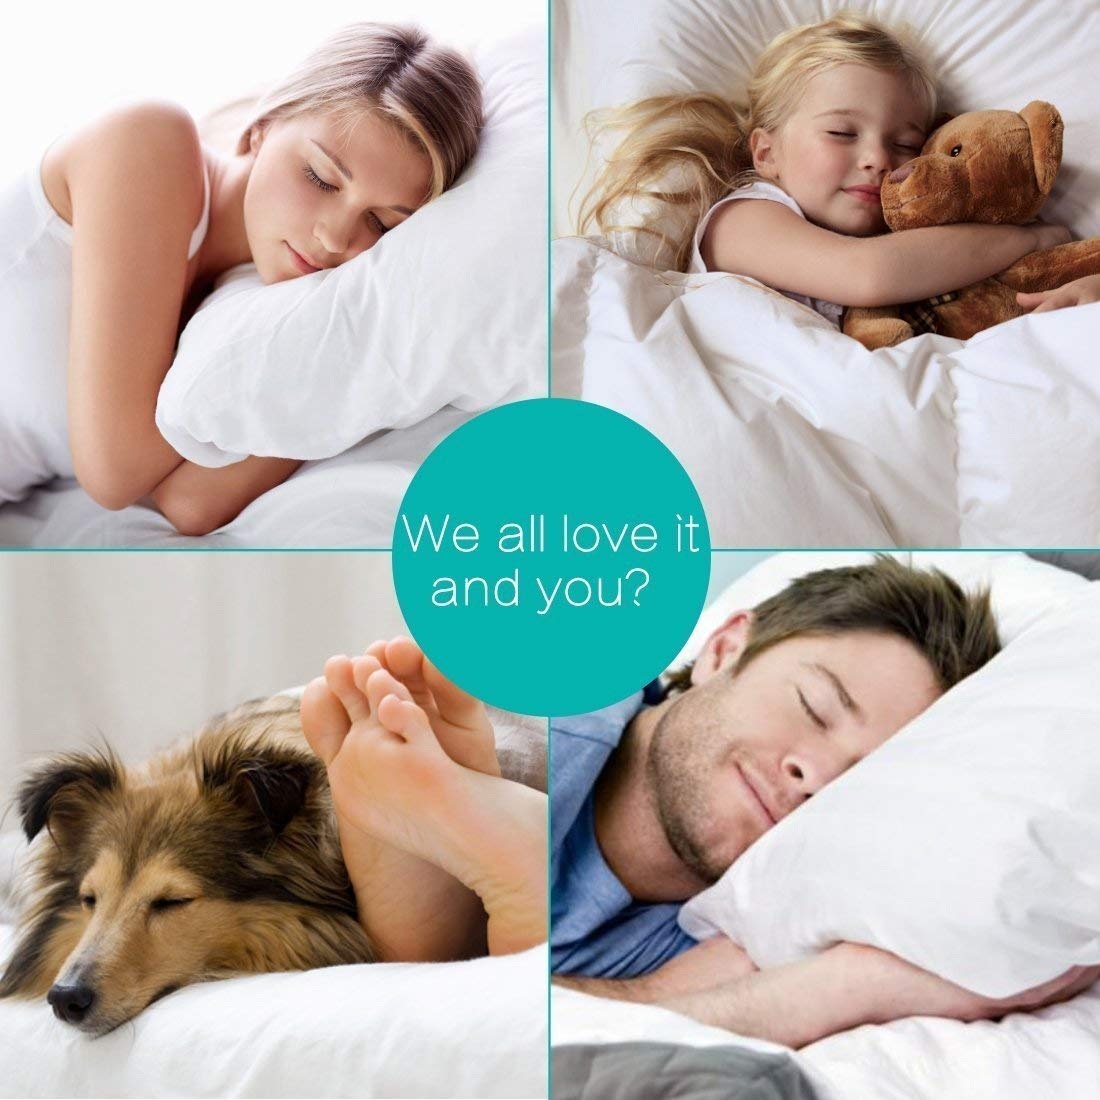 Everyone loves Tastelife Waterproof Mattress Protector